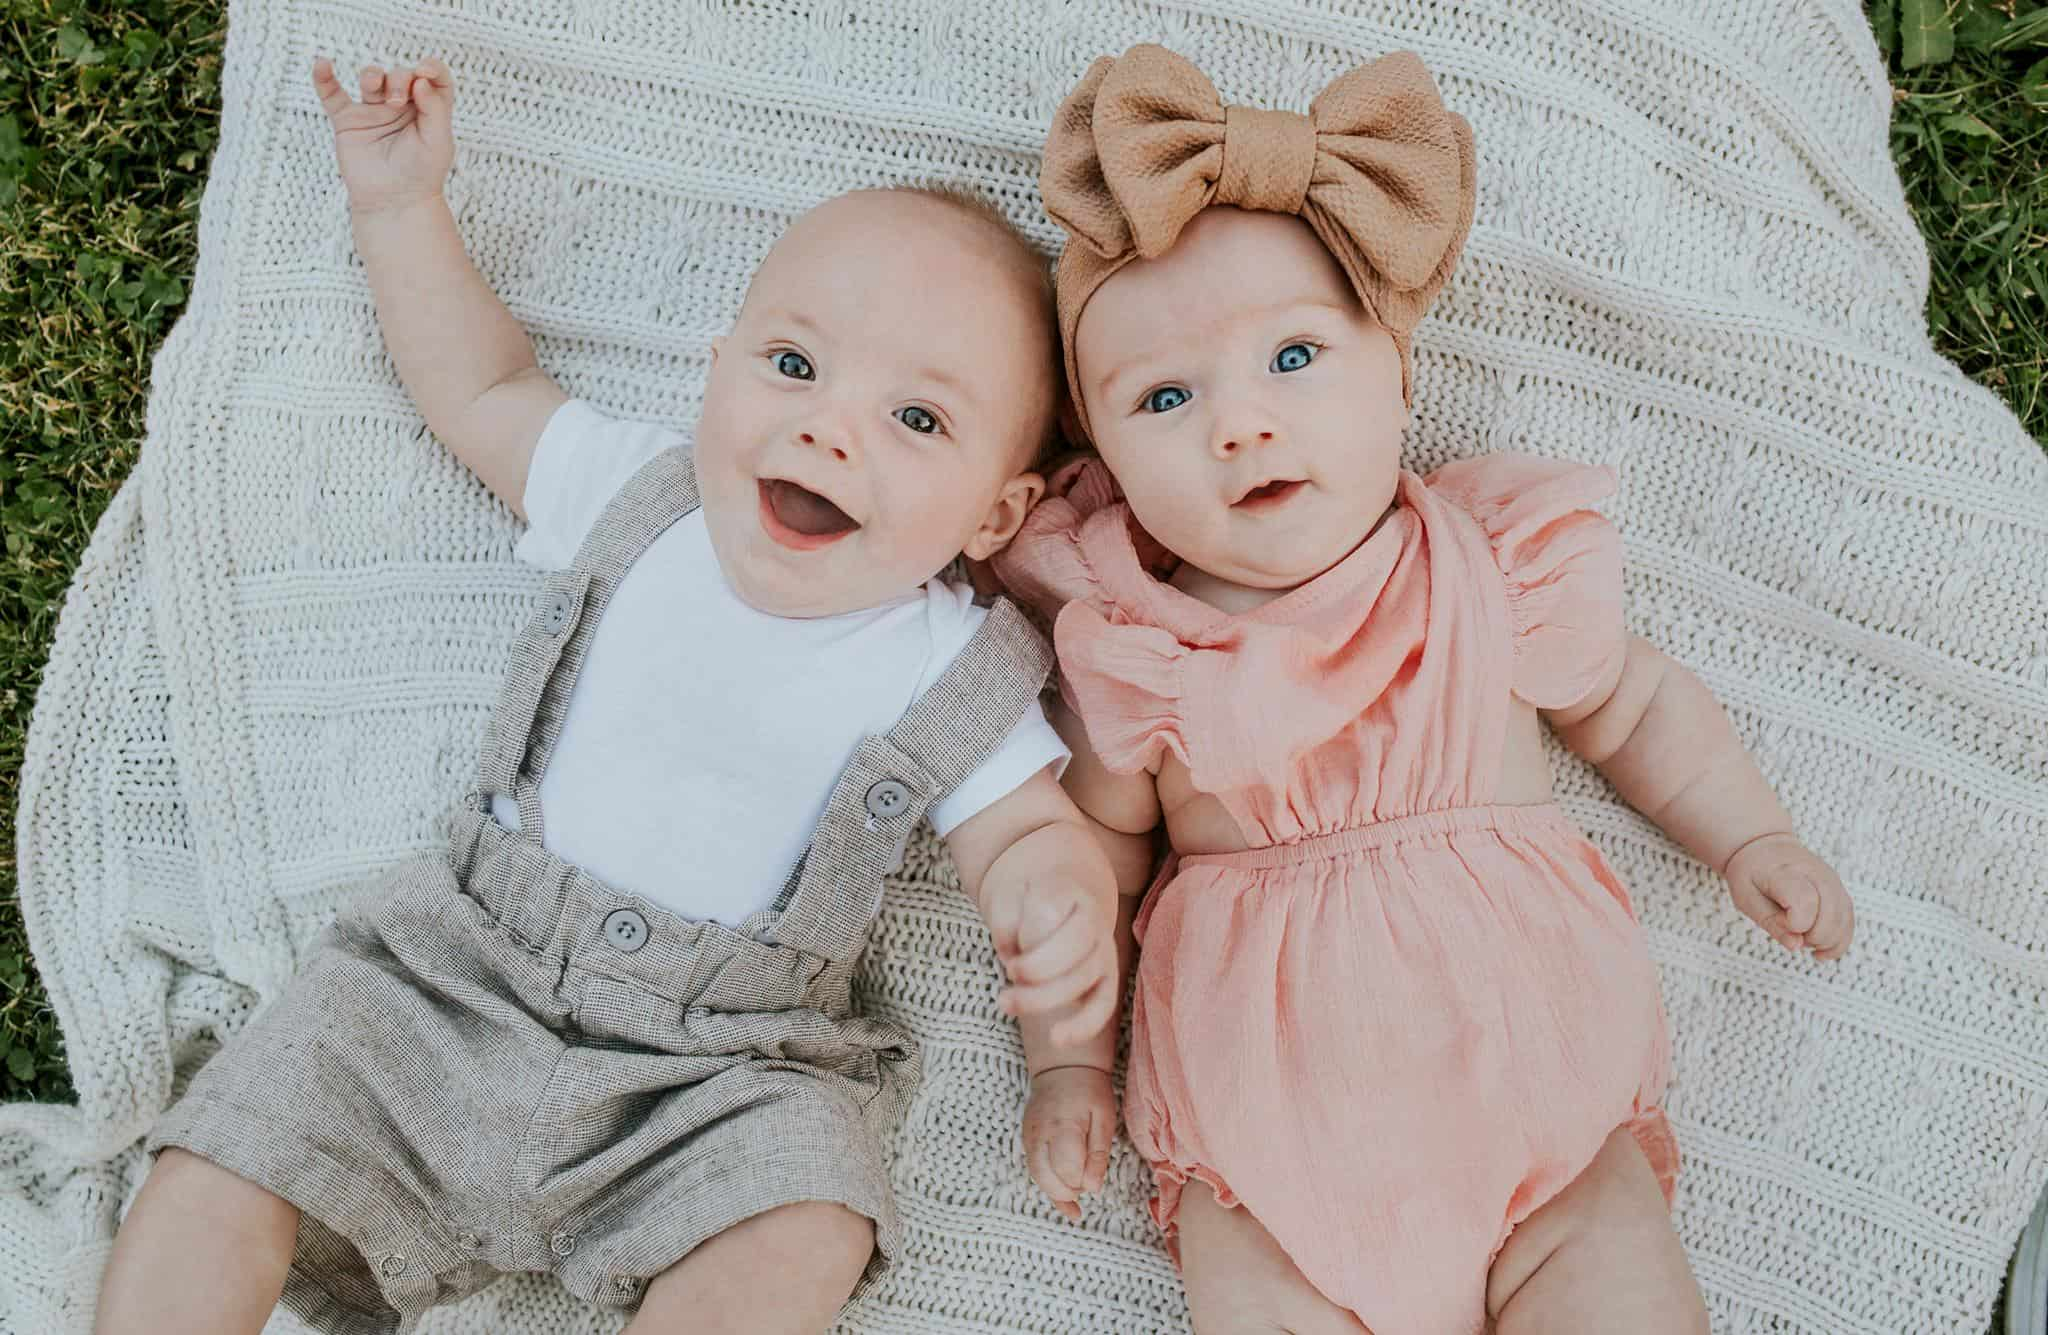 Two newborns dressed up nicely laying on a blanket